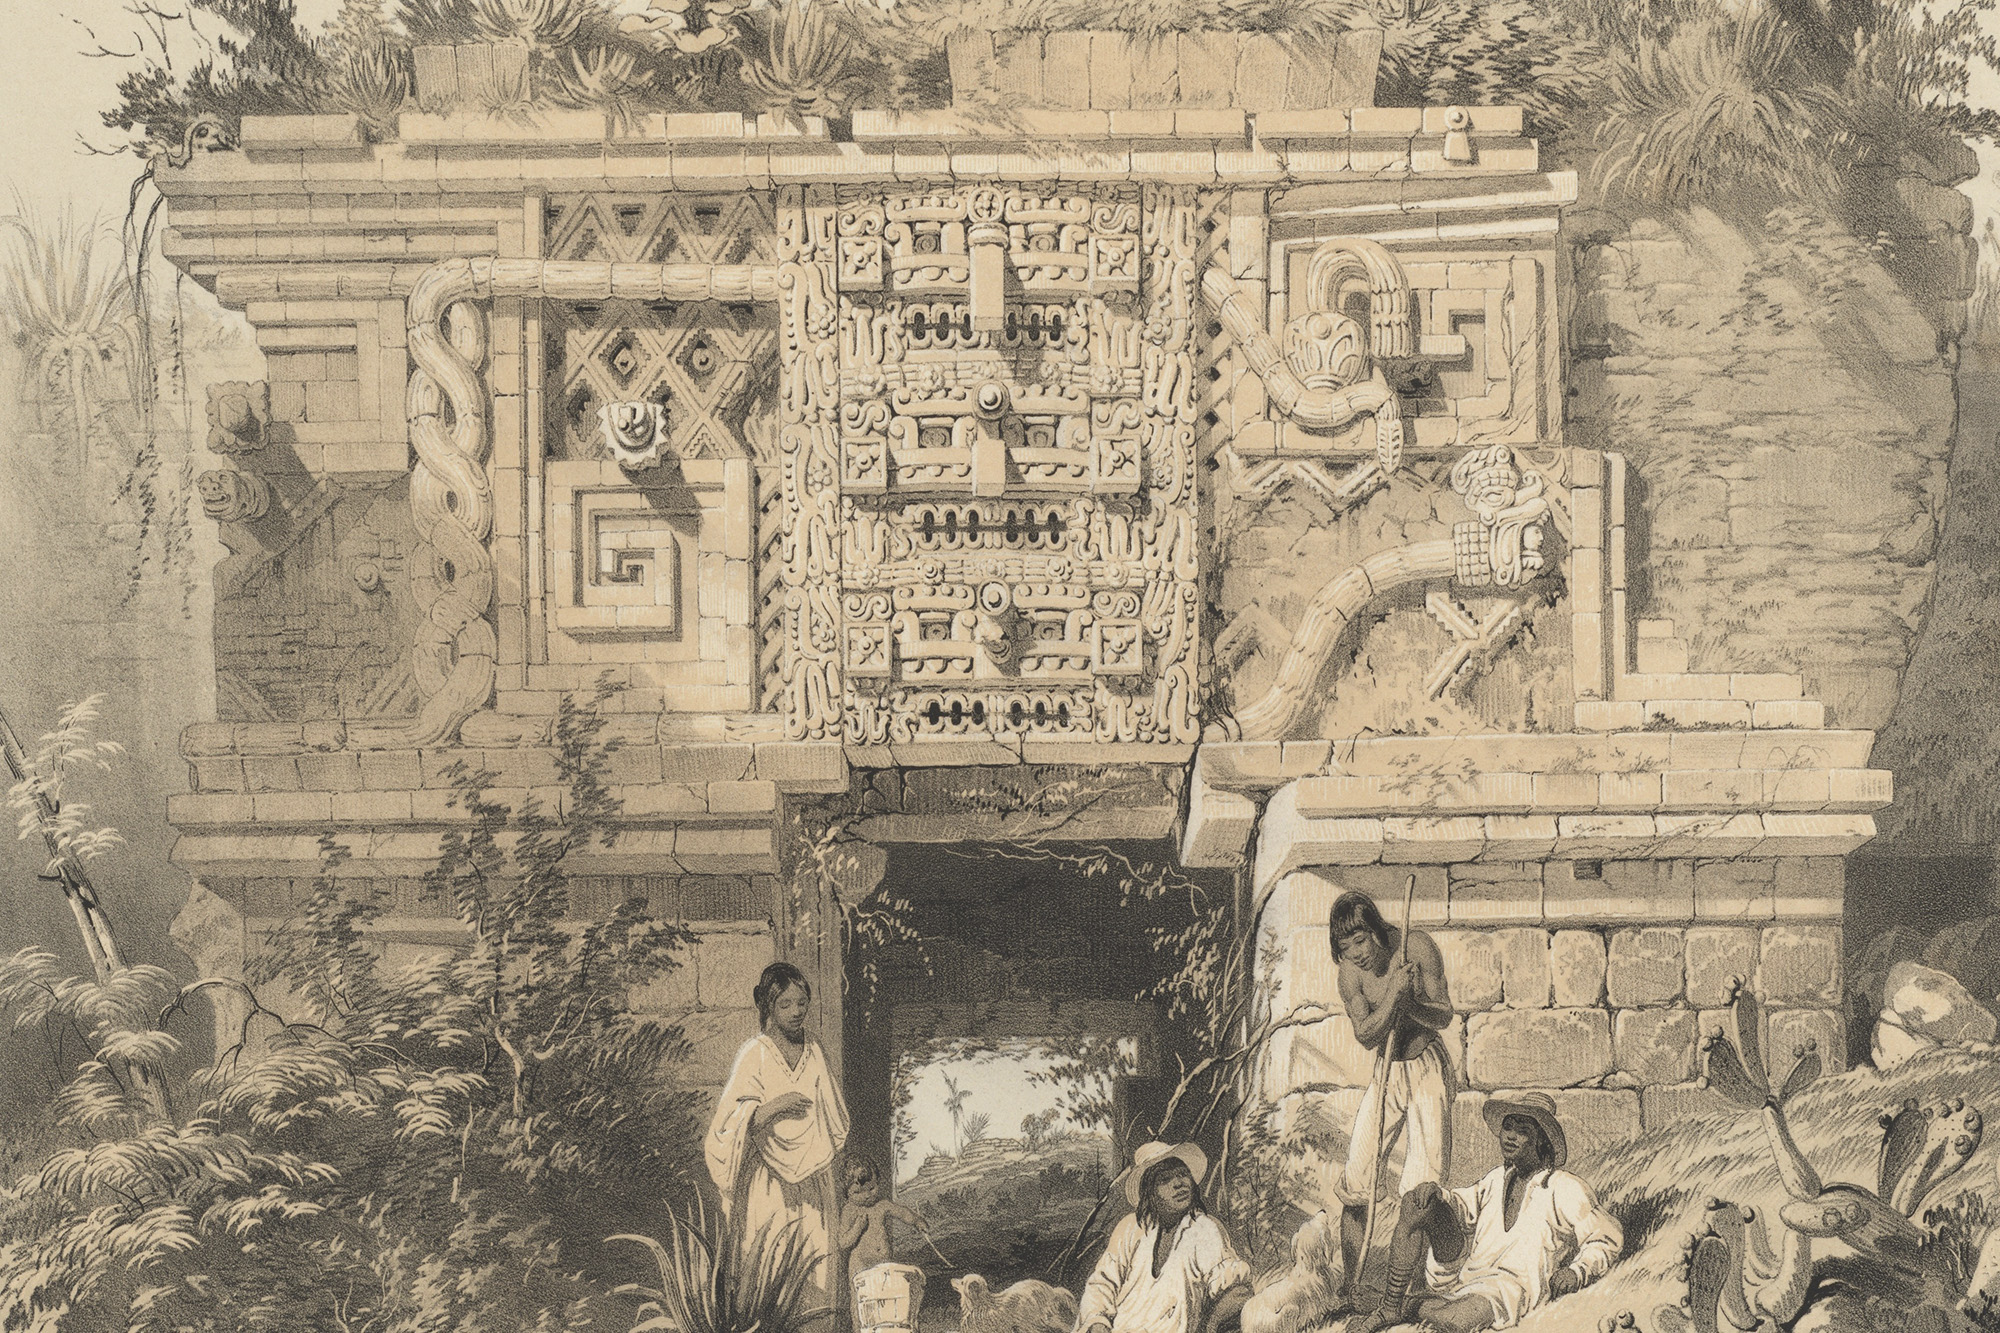 Detail of Portion of a Building; Las Monjas, Uxmal, lithograph on stone by A. Picken, based on artwork by Frederick Catherwood, from Catherwood 1844, pl. XIV.